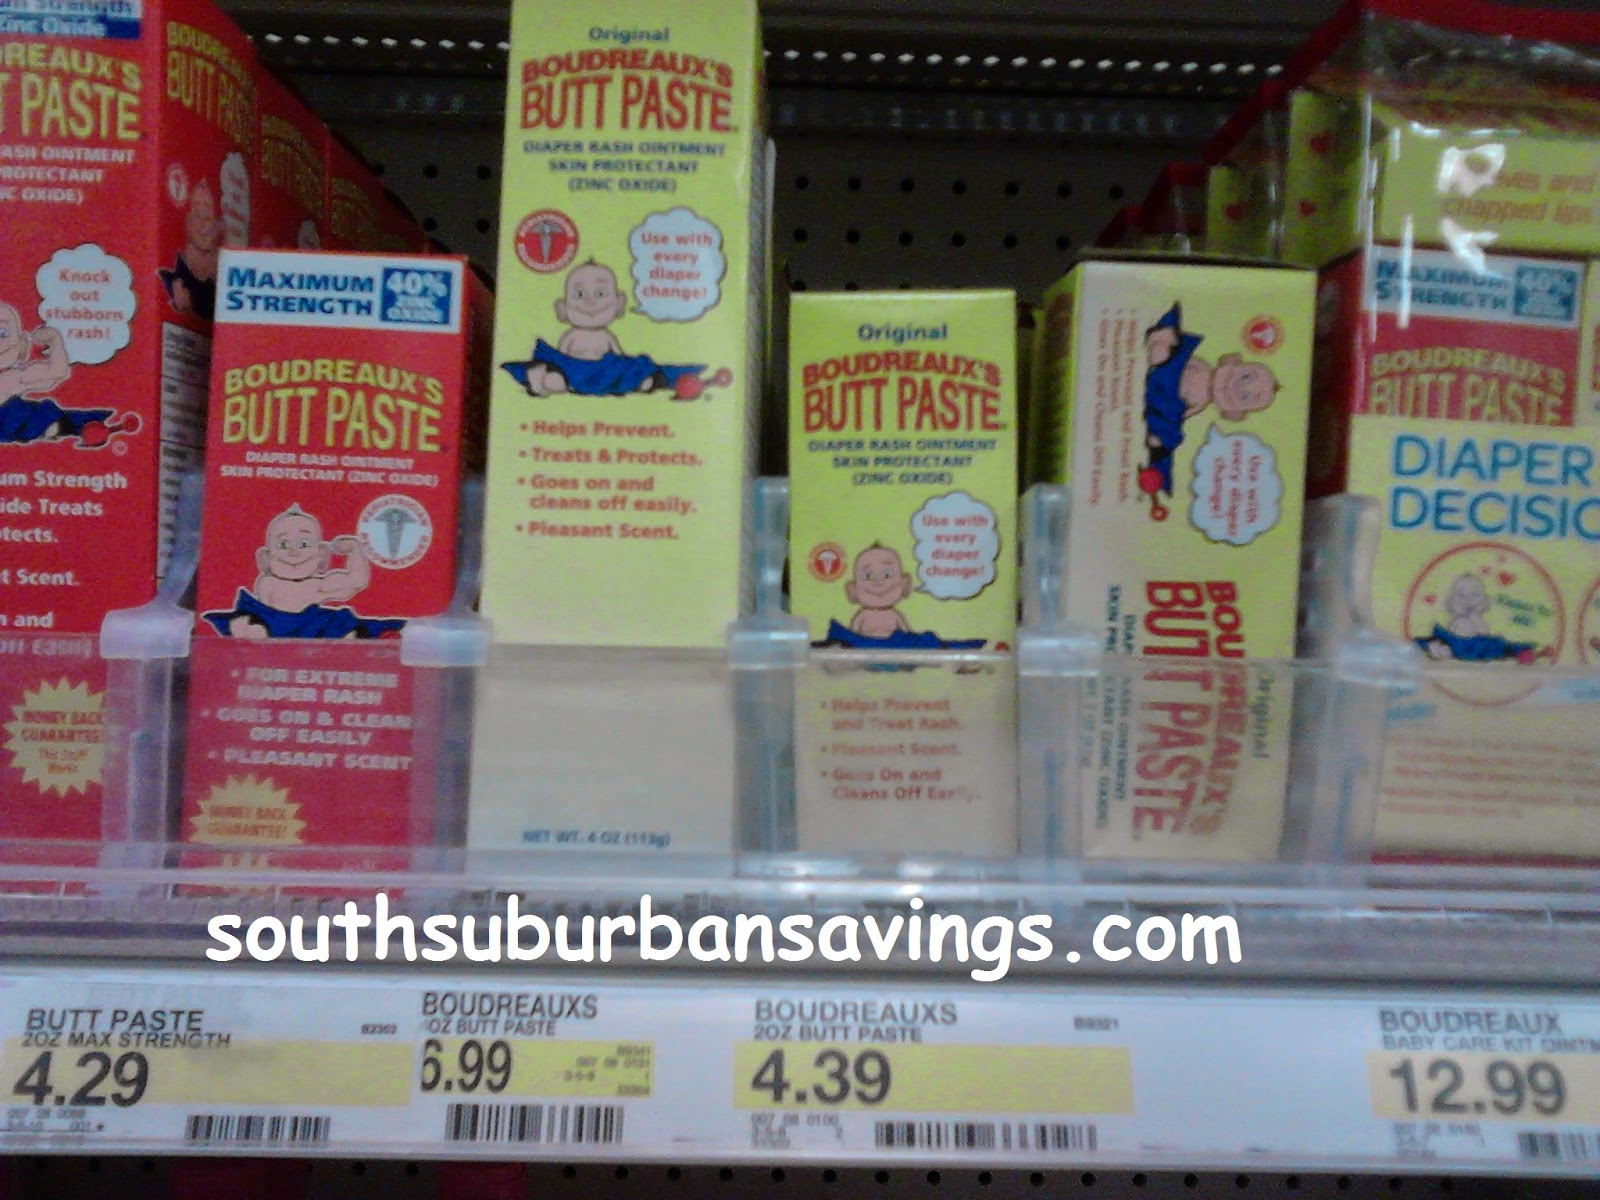 New HIGH VALUE Coupon: $2/1 Boudreaux's Butt Paste + Target Deal